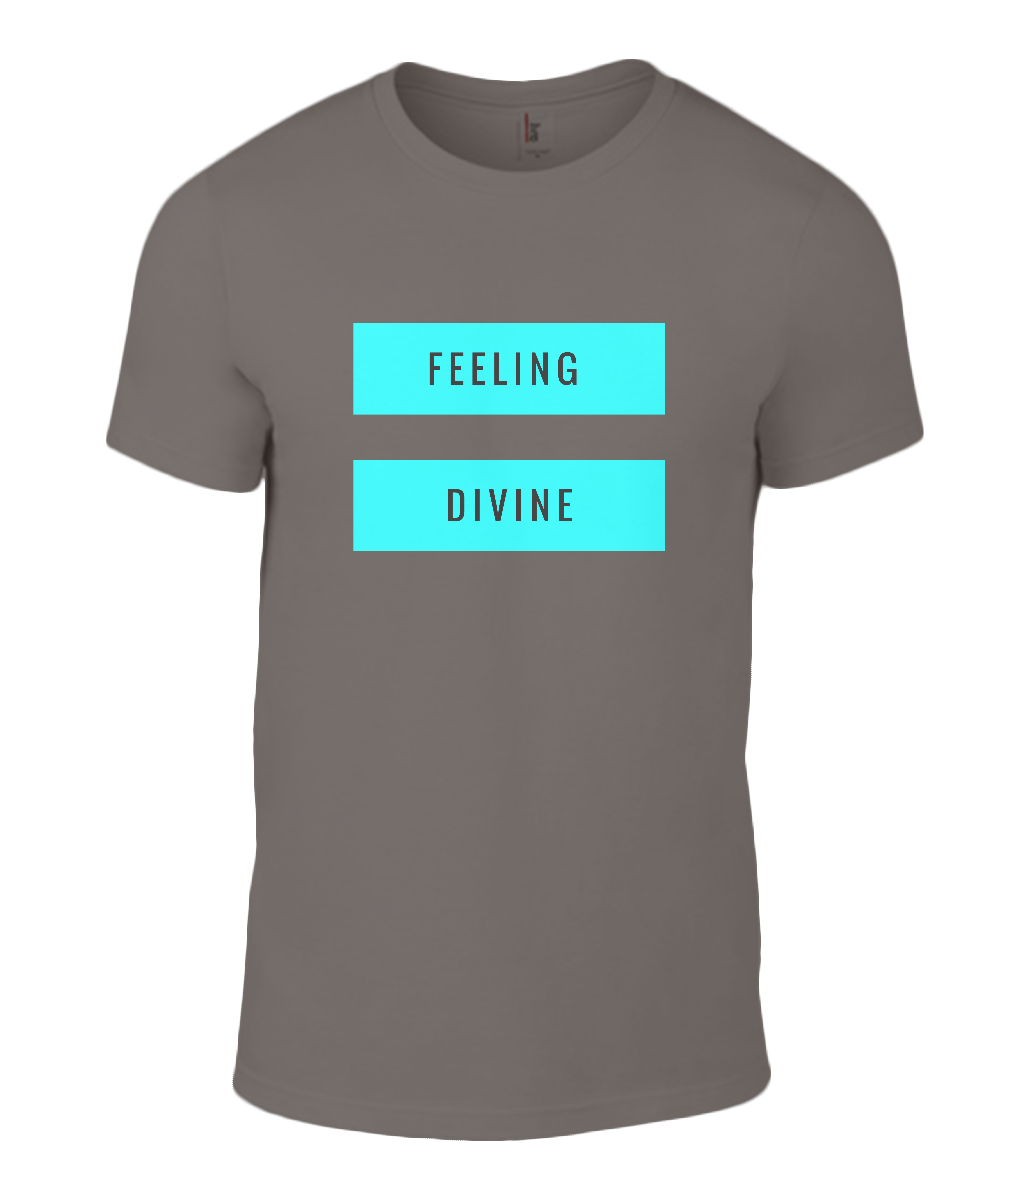 Divine Quote - Mens T-Shirt with Aqua/Turquoise Writing